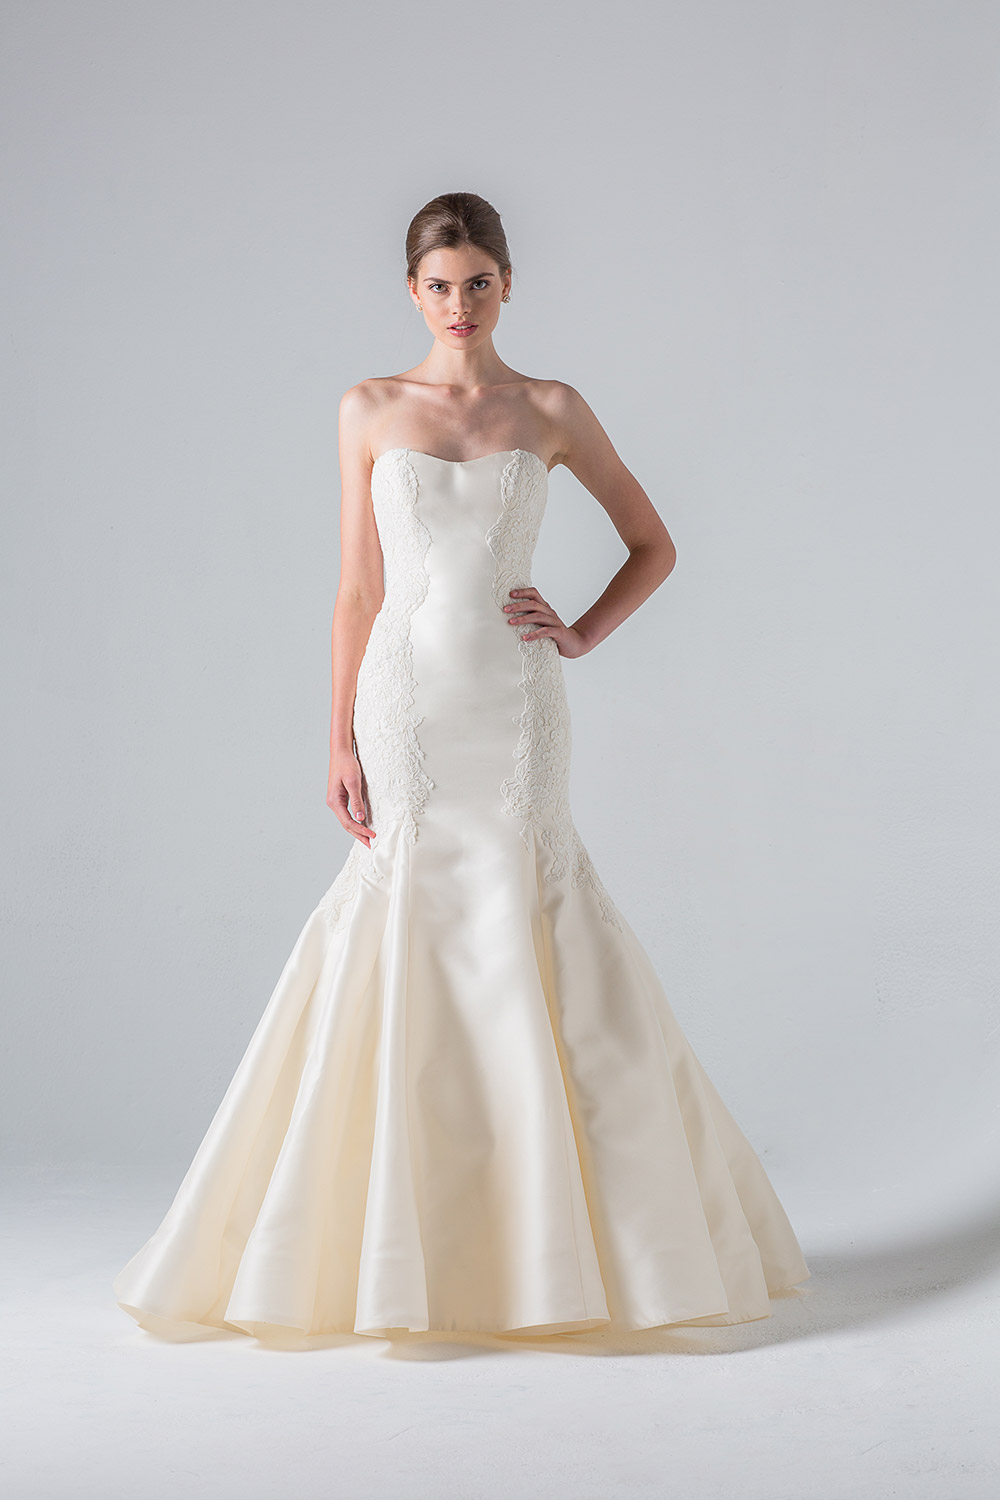 Villette - Anne Barge Couture Spring 2016 Collection. www.theweddingnotebook.com